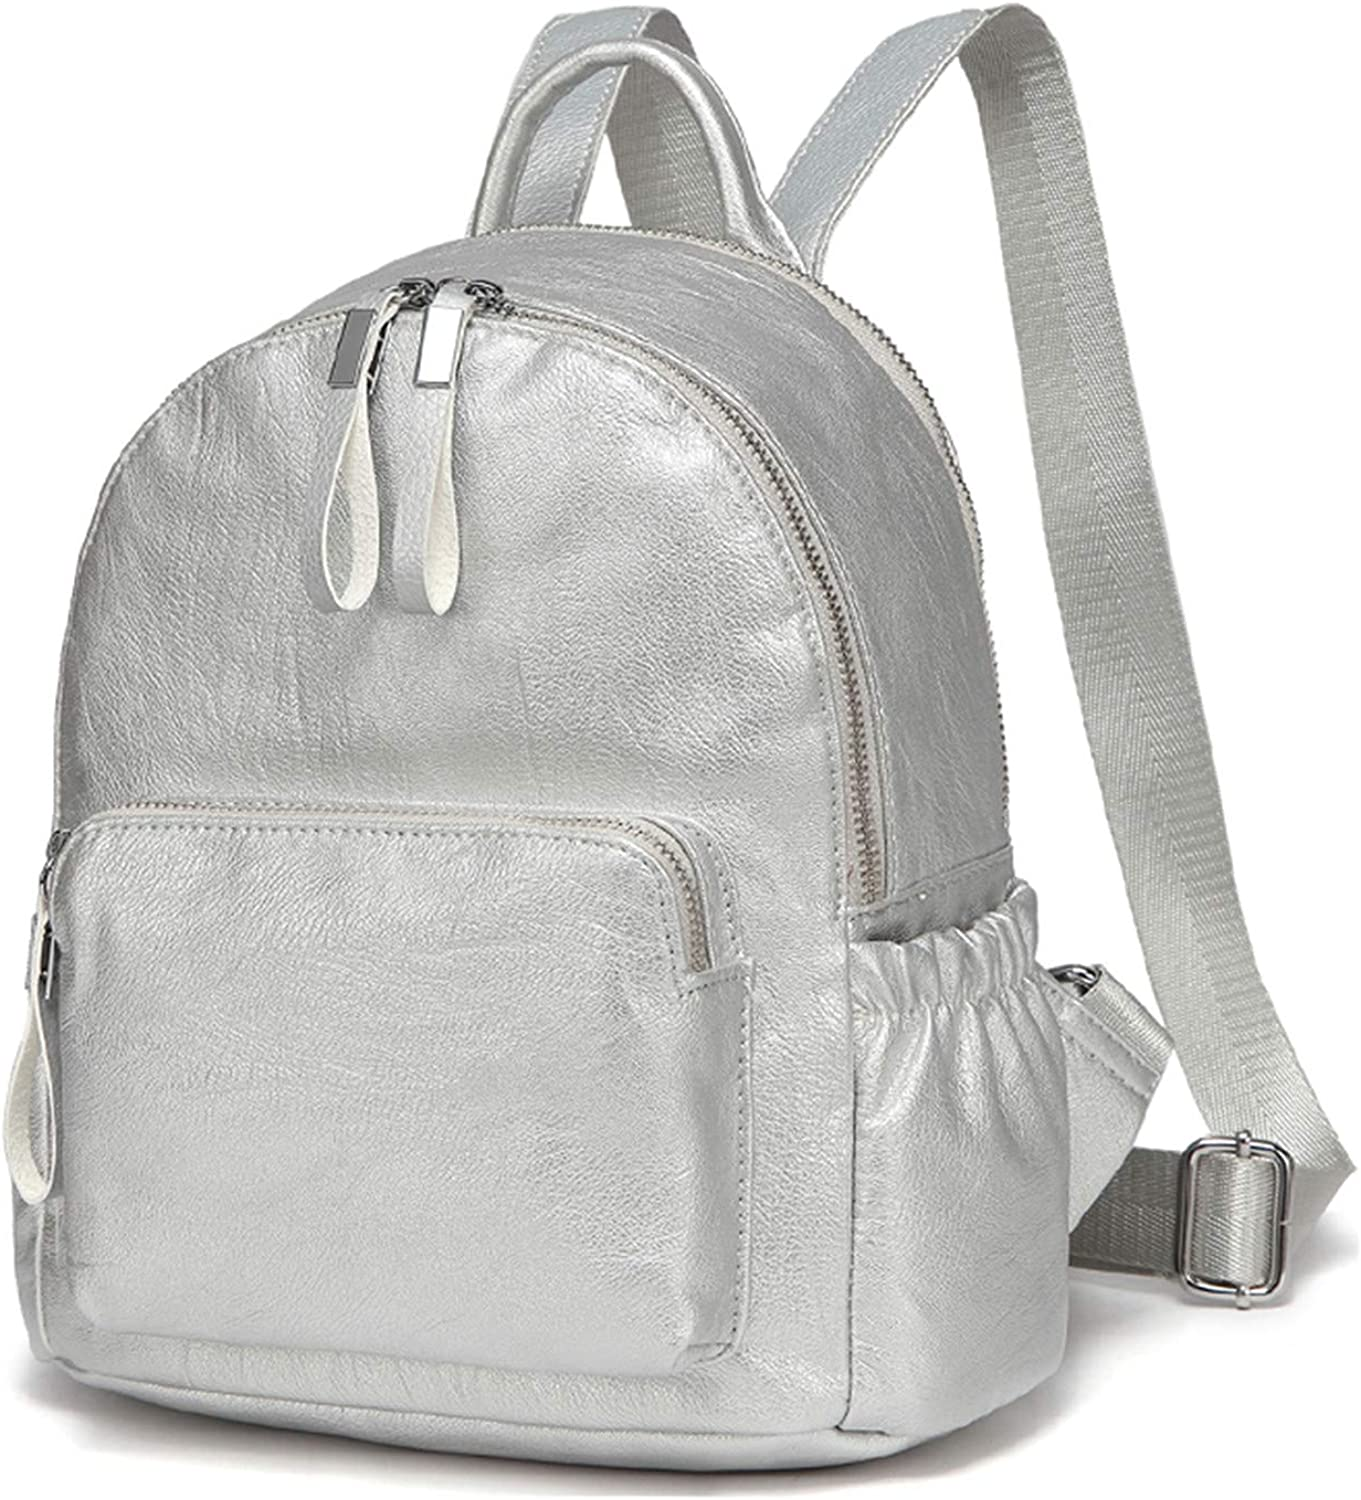 bluee Mini Backpack Small Backpack for Women Cute Backpack Bag Pack PU Leather Silver